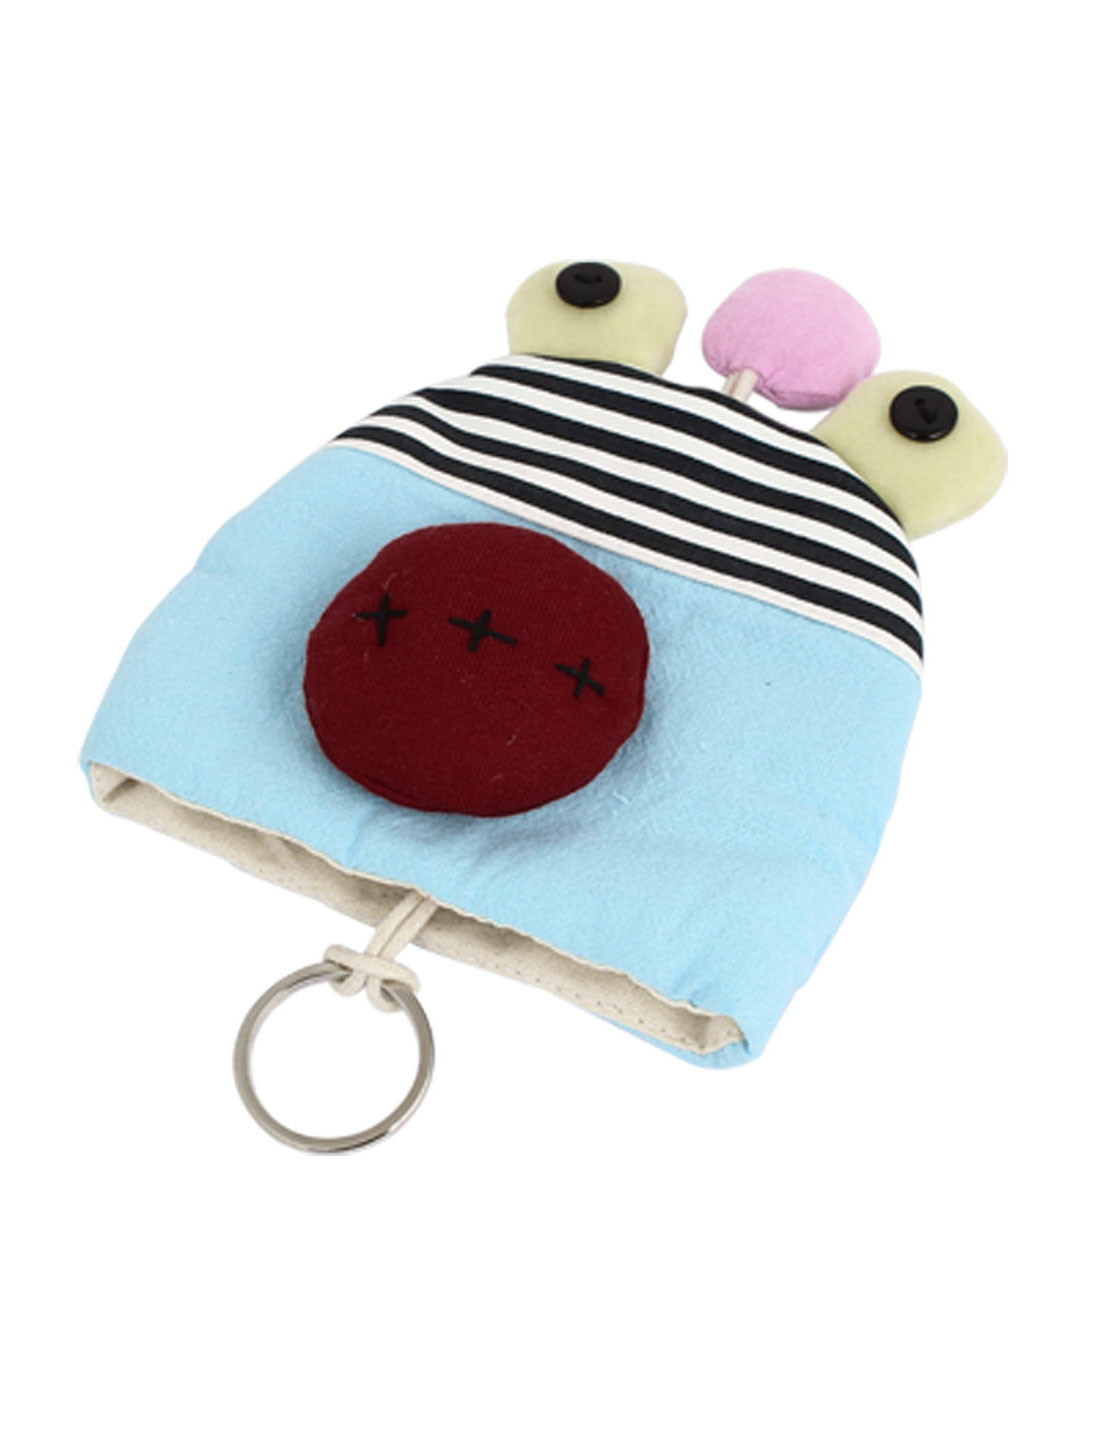 Lady Split Ring Strap Cartoon Animal Pattern Zip Up Coin Key Purse Bag Wallet Pouch Light Blue